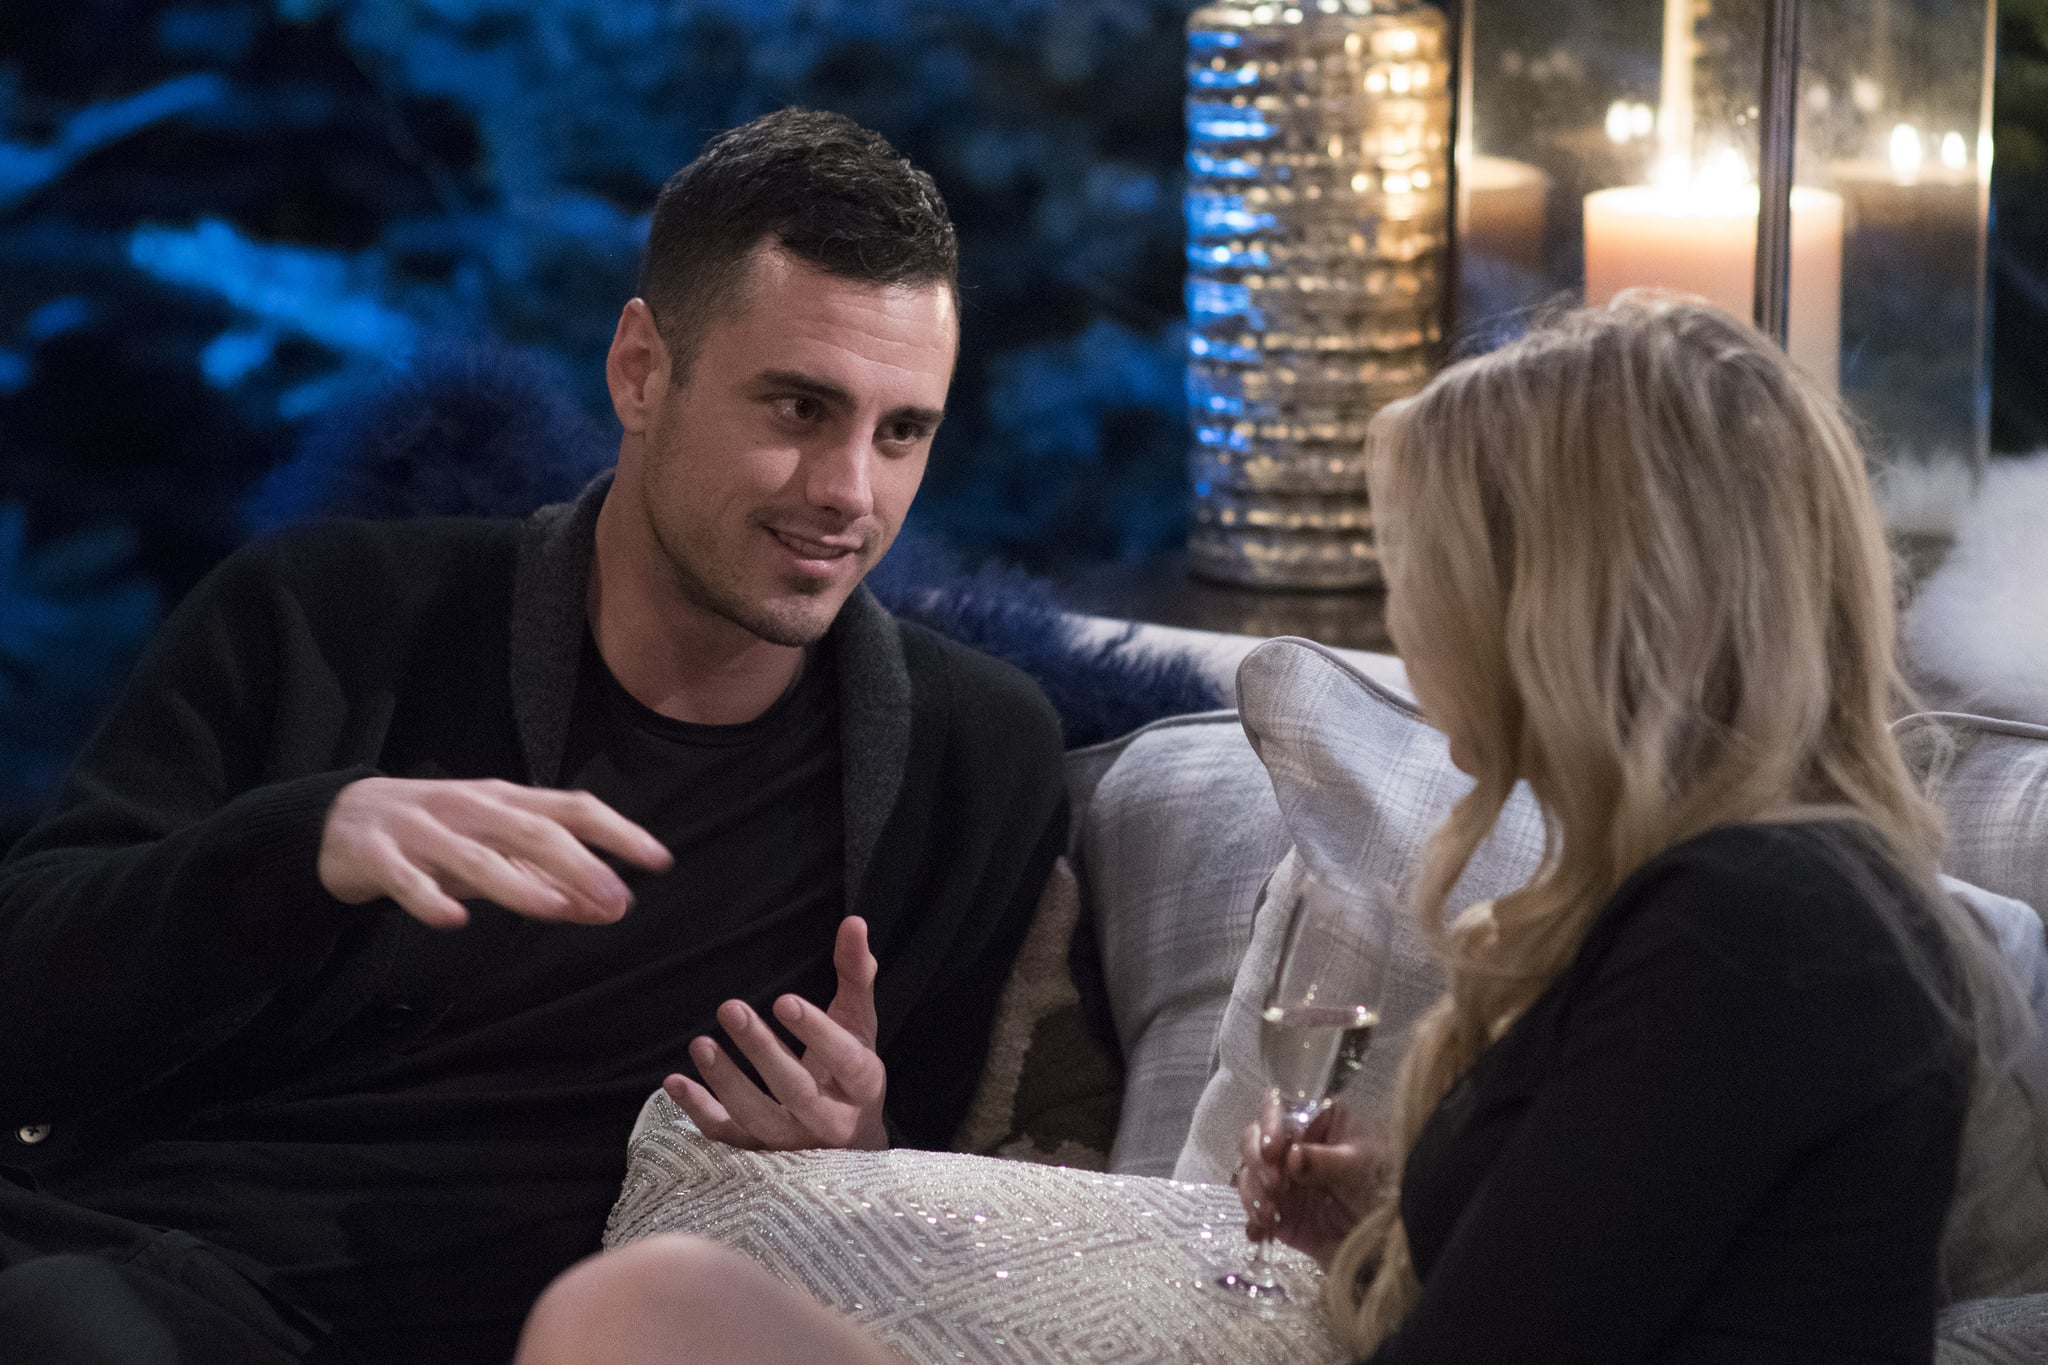 THE BACHELOR WINTER GAMES -  Is love the universal language? Find out as 14 international bachelors and bachelorettes from such countries as Switzerland, Japan and Australia compete and, hopefully, find love with 12 of Americas Bachelor Nation favourites. These singles will go head-to-head in winter-themed challenges, including the toughest sport of all - love. Chris Harrison hosts this highly anticipated, four-episode series, complete with the usual dose of tears, drama, romance and laughter, as The Bachelor Winter Games, a global celebration of unity and love, premieres on TUESDAY, FEB. 13 (8:00-10:01 p.m. EST), on The ABC Television Network. (ABC/Lorenzo Bevilaqua)BEN HIGGINS